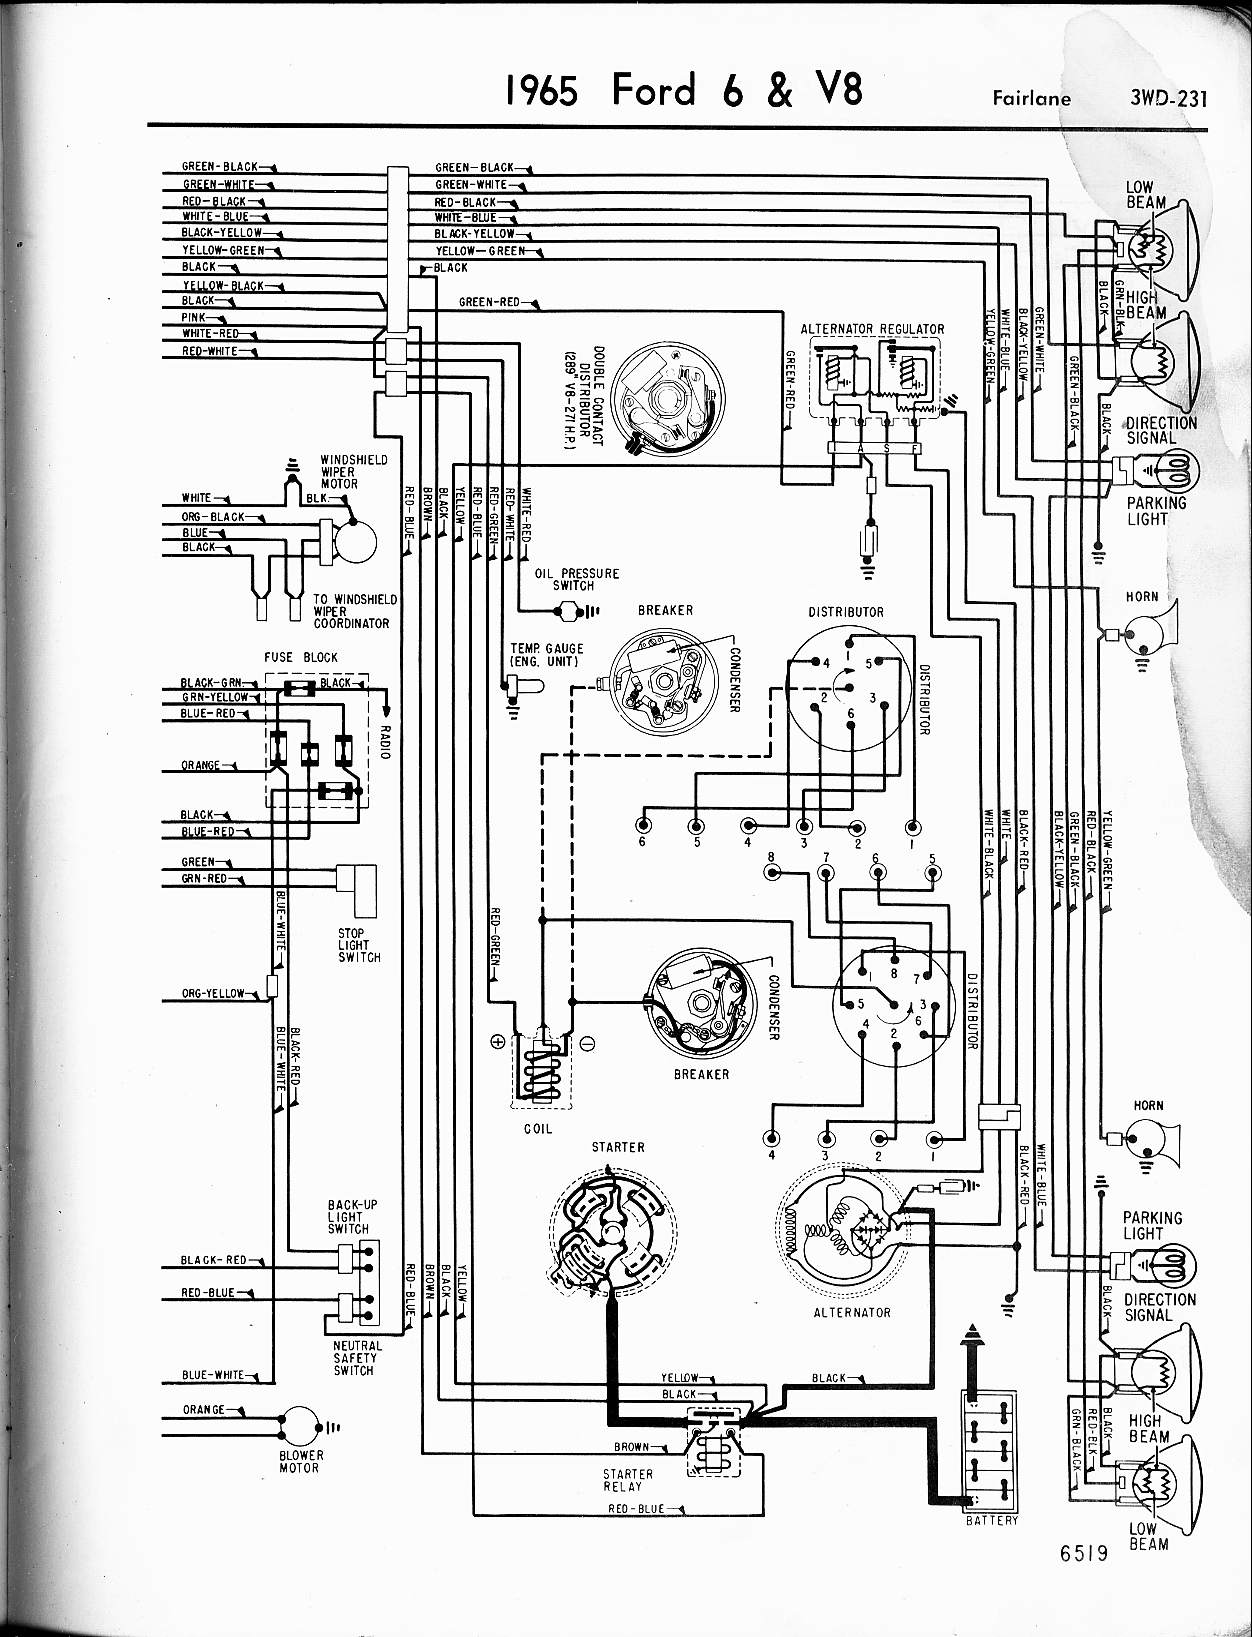 1968 Ford 2000 Farm Tractor Ignition Switch Wiring Diagram